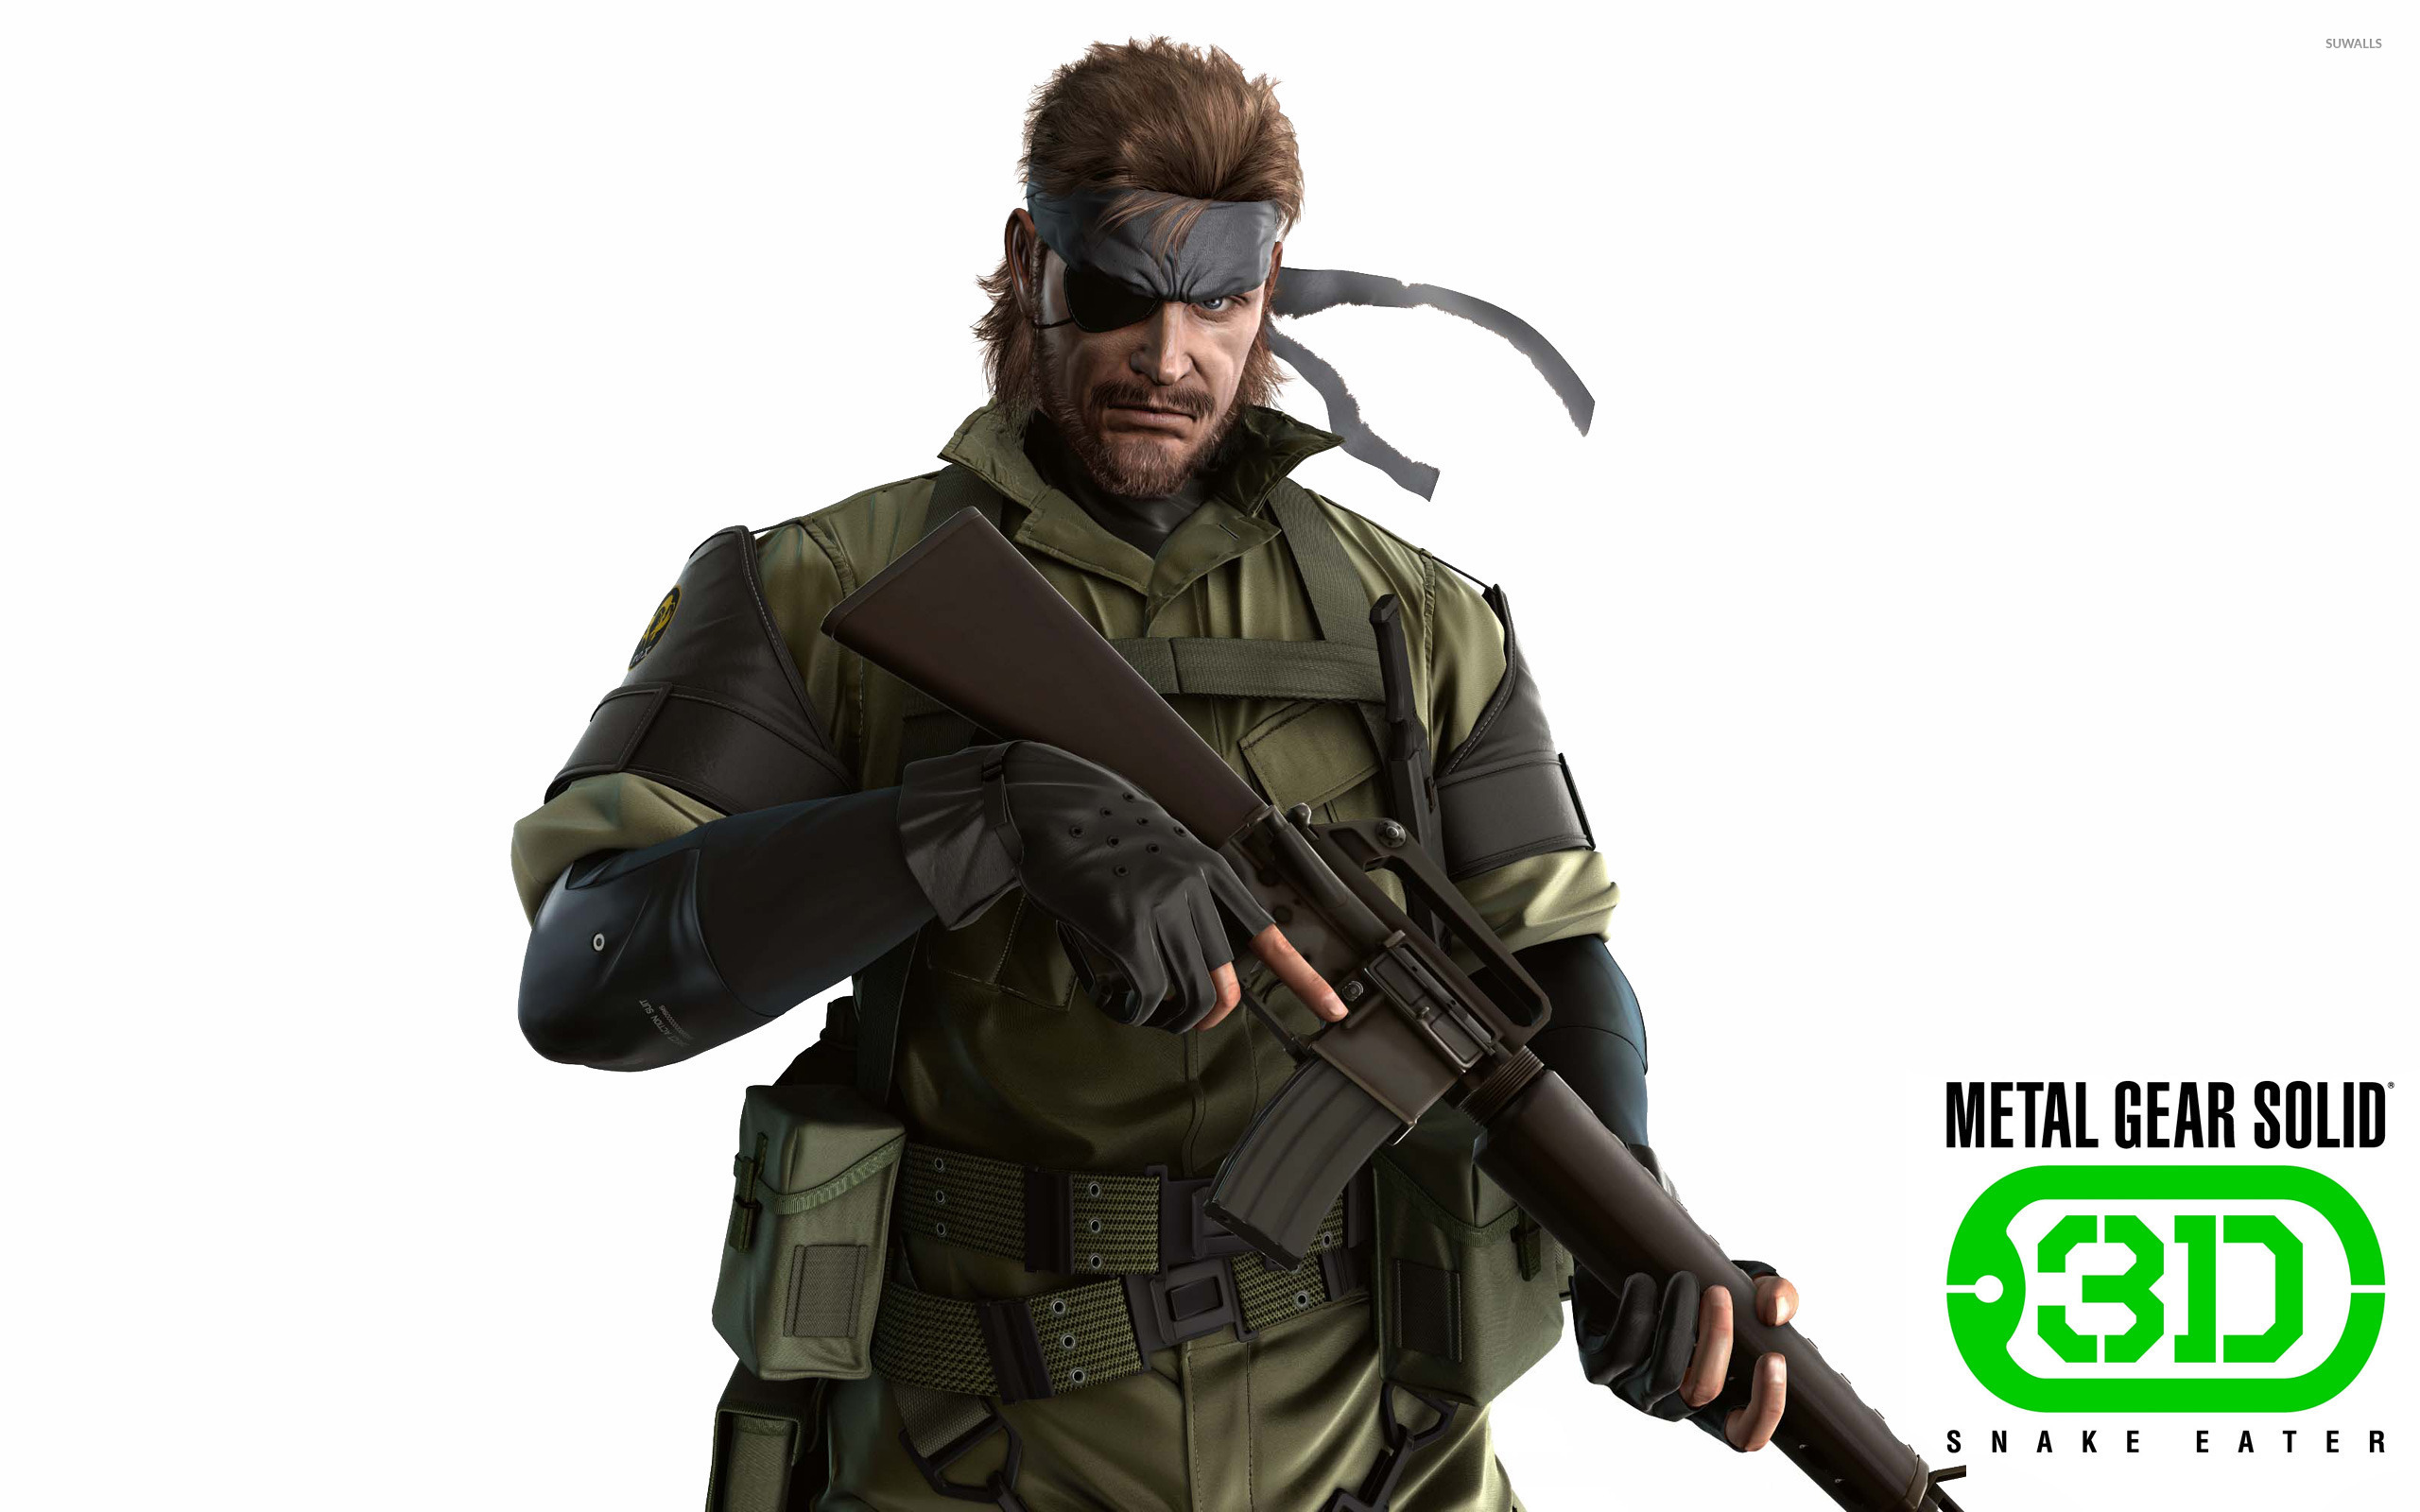 Metal Gear Solid Snake Eater 3d Wallpaper 535652